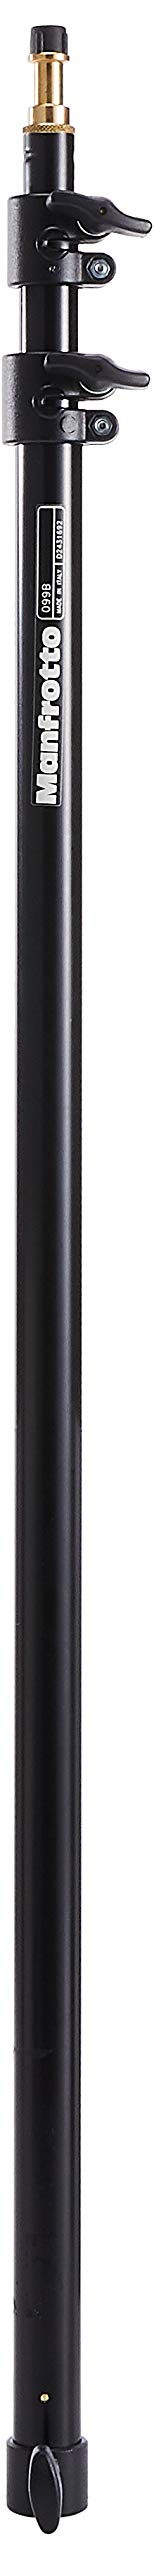 Manfrotto 099B 3- Section Extension Pole Extends from 35-Inches to 92-Inches for Light Stands (Black)